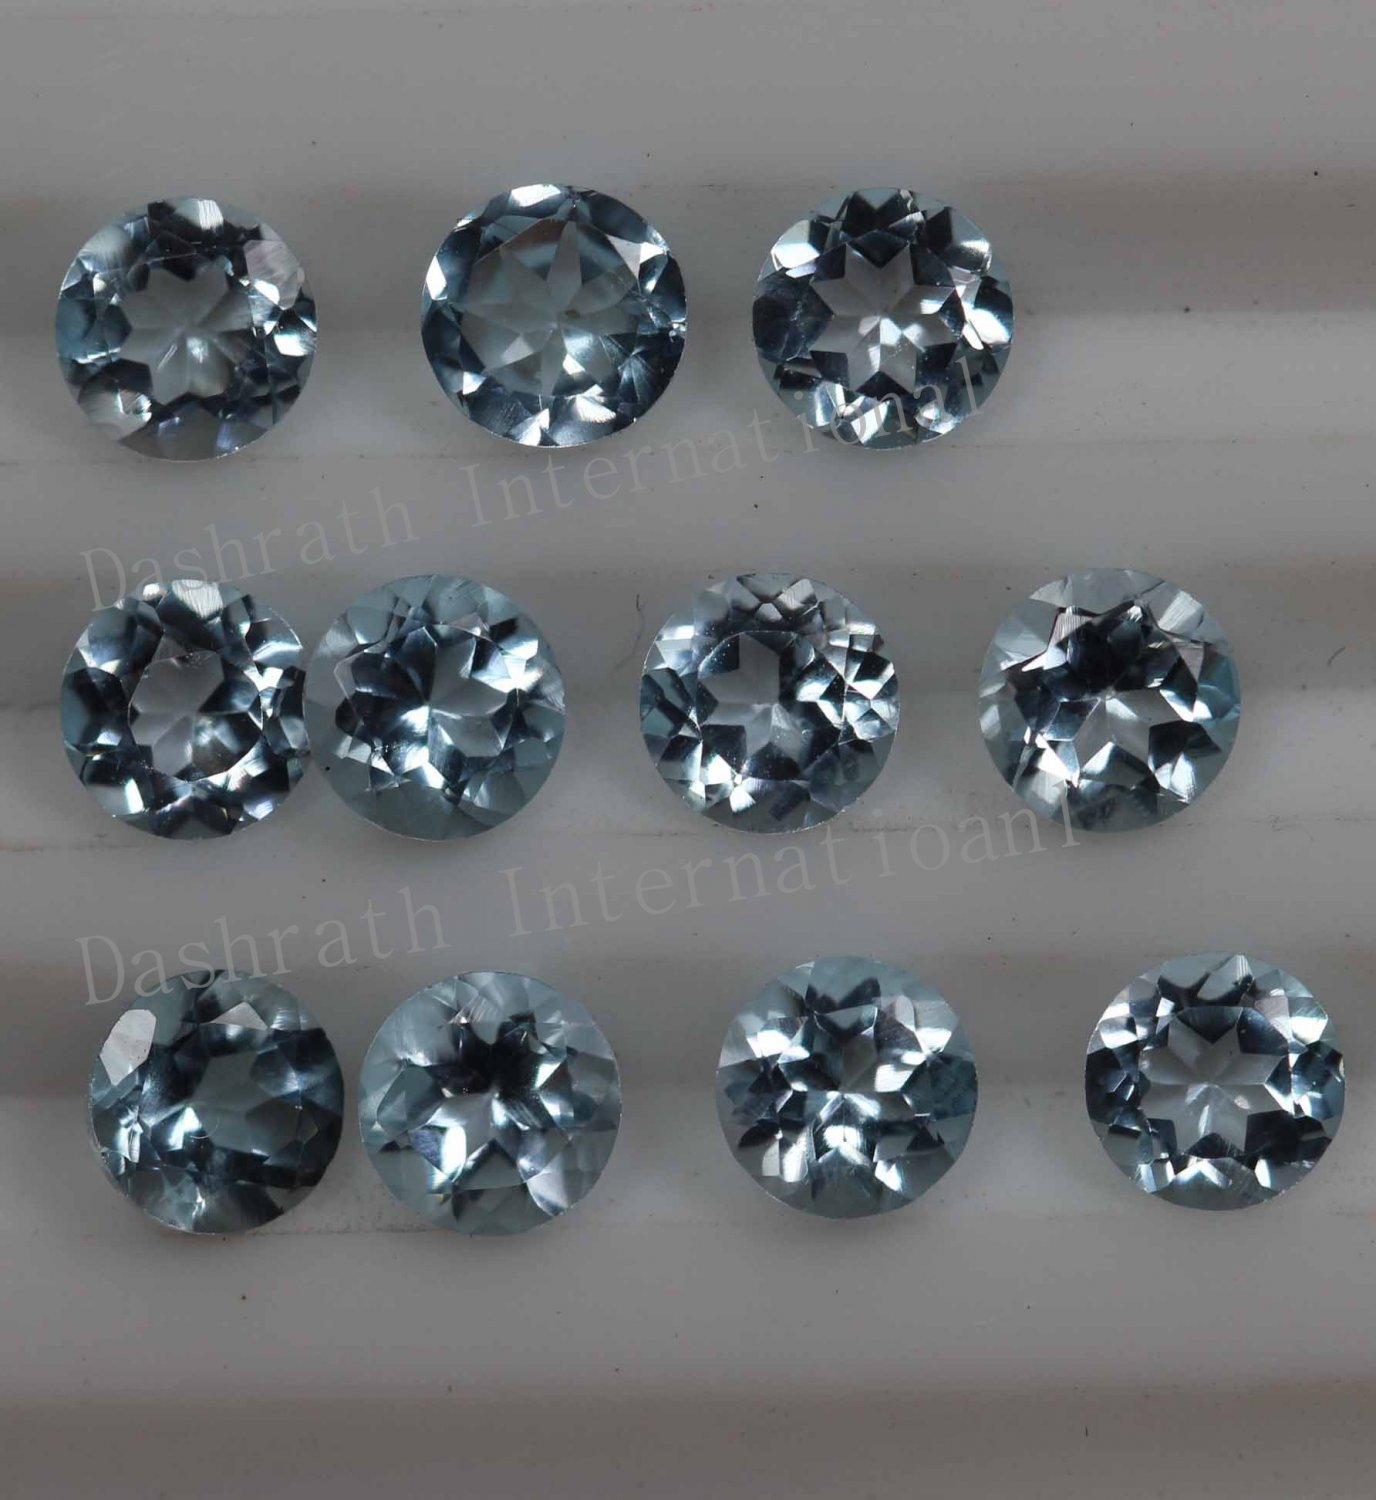 7mmNatural Sky Blue Topaz Faceted Cut Round 10 Pieces Lot Blue Color  Top Quality Loose Gemstone